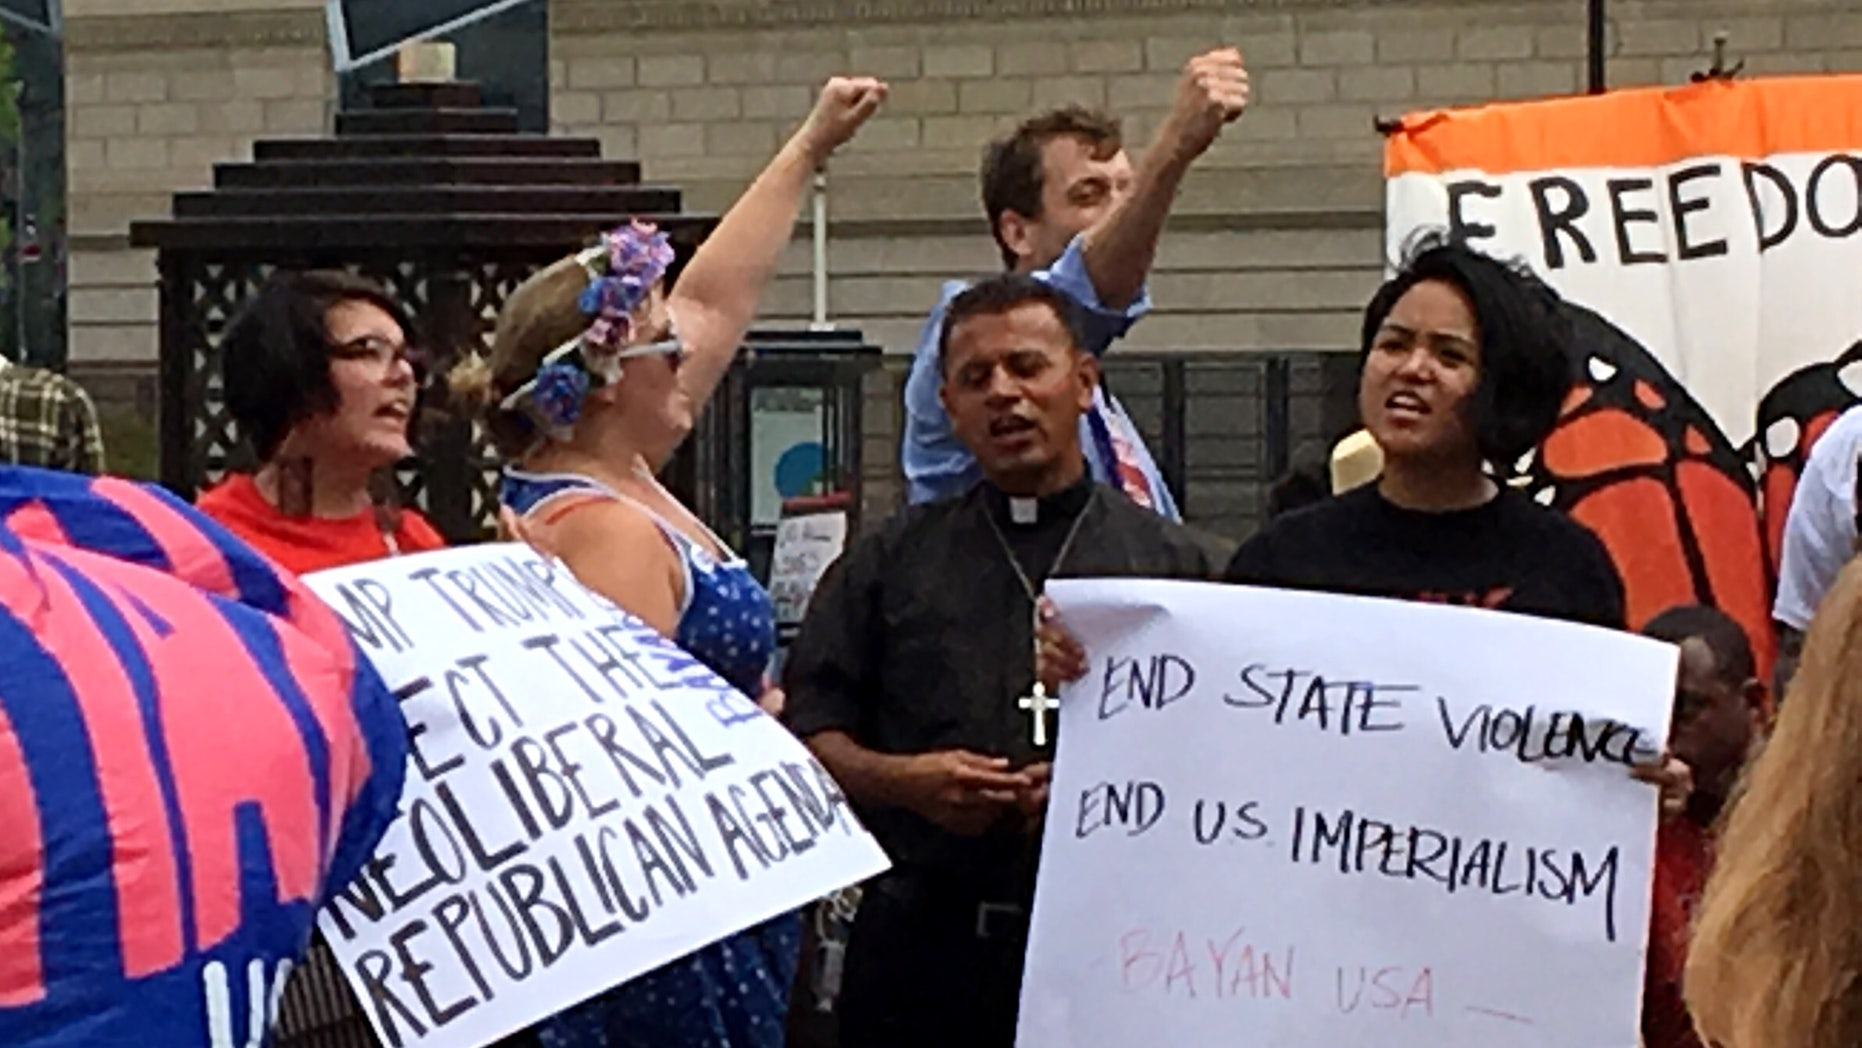 The Rev. Jose Landaverde (center) at a rally in downtown Cleveland on Monday. (Photo: Andrew O'Reilly/Fox News Latino)